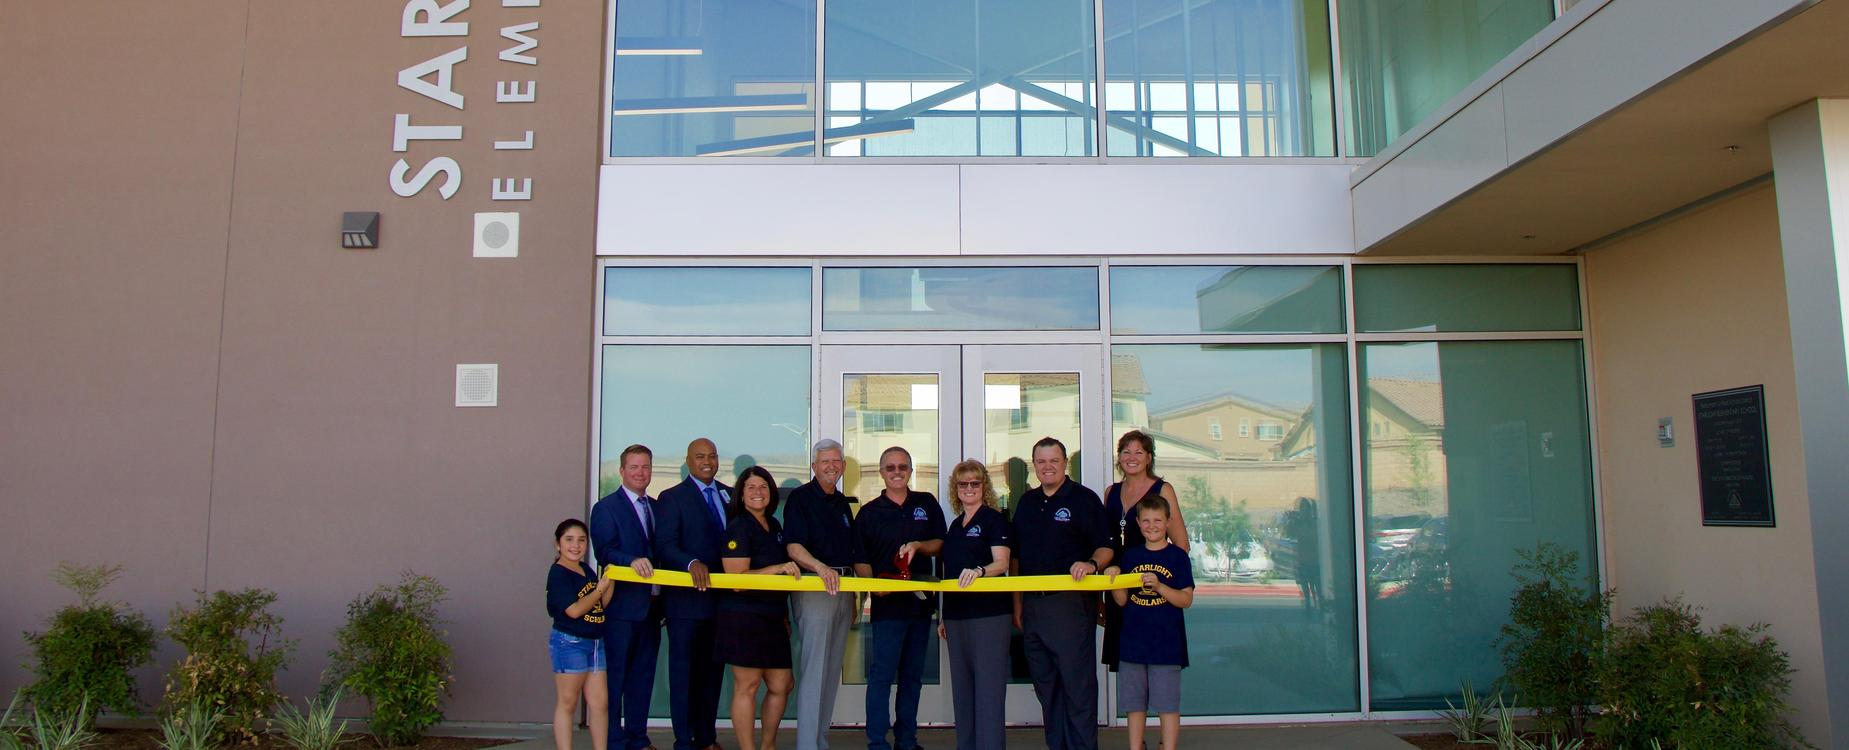 Starlight Elementary Ribbon Cutting